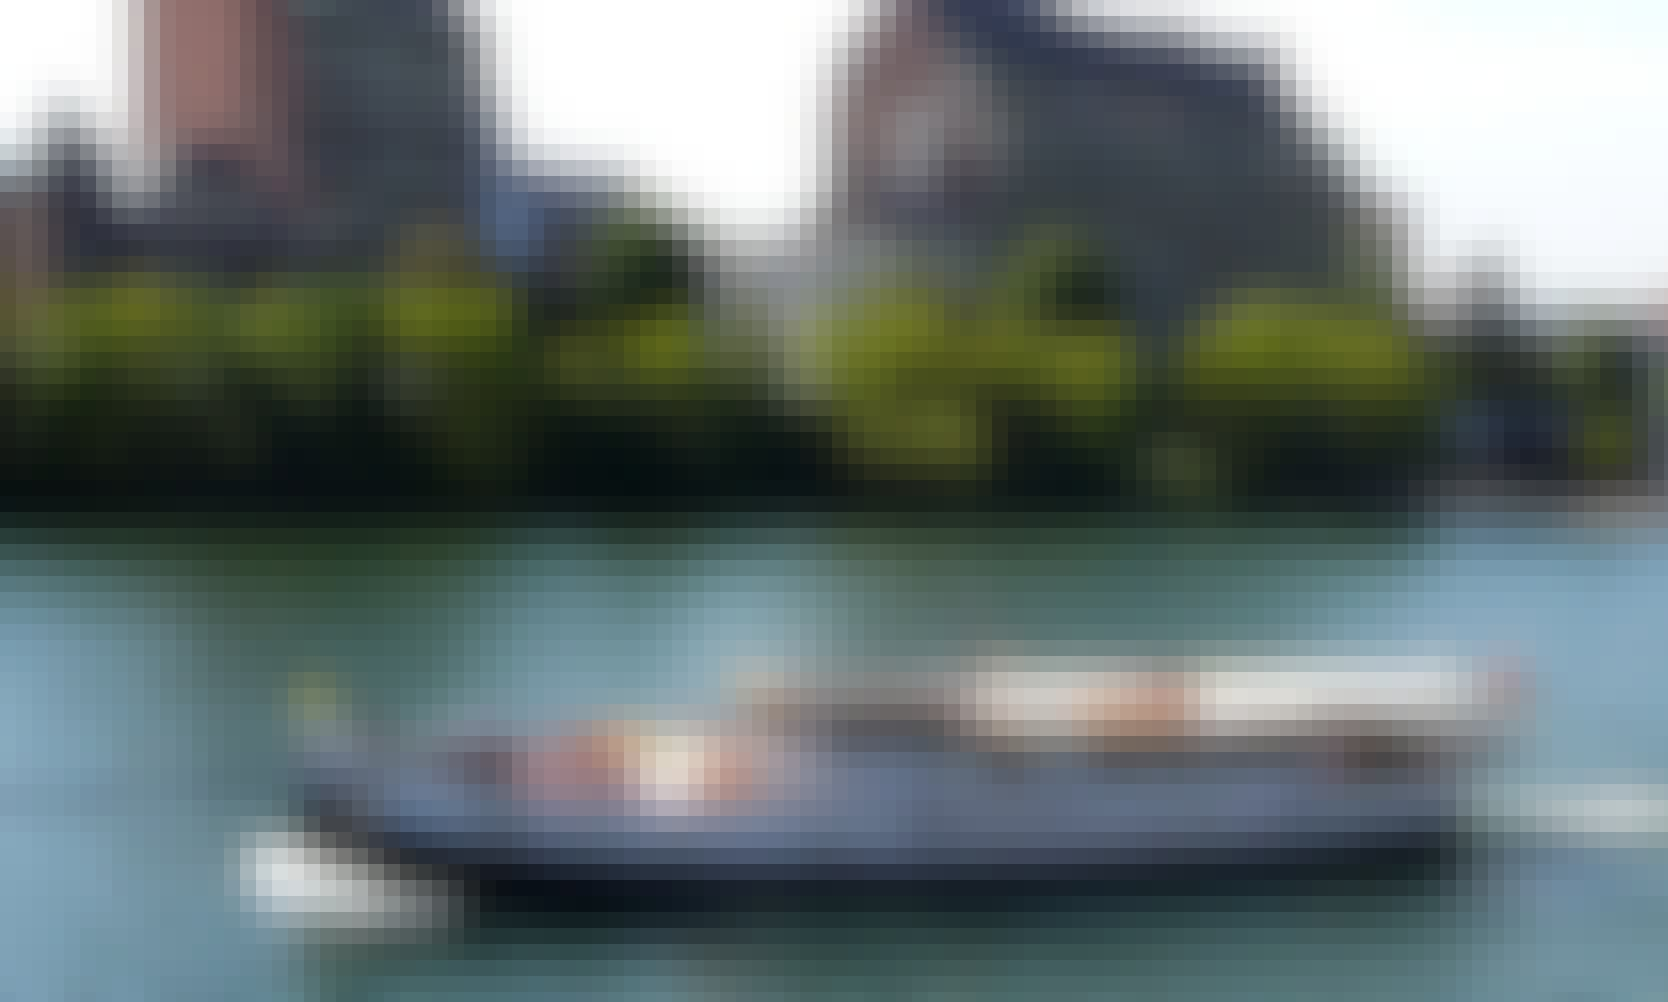 Experience and Book a Romantic Floating Hotel in Maastricht, Netherlands